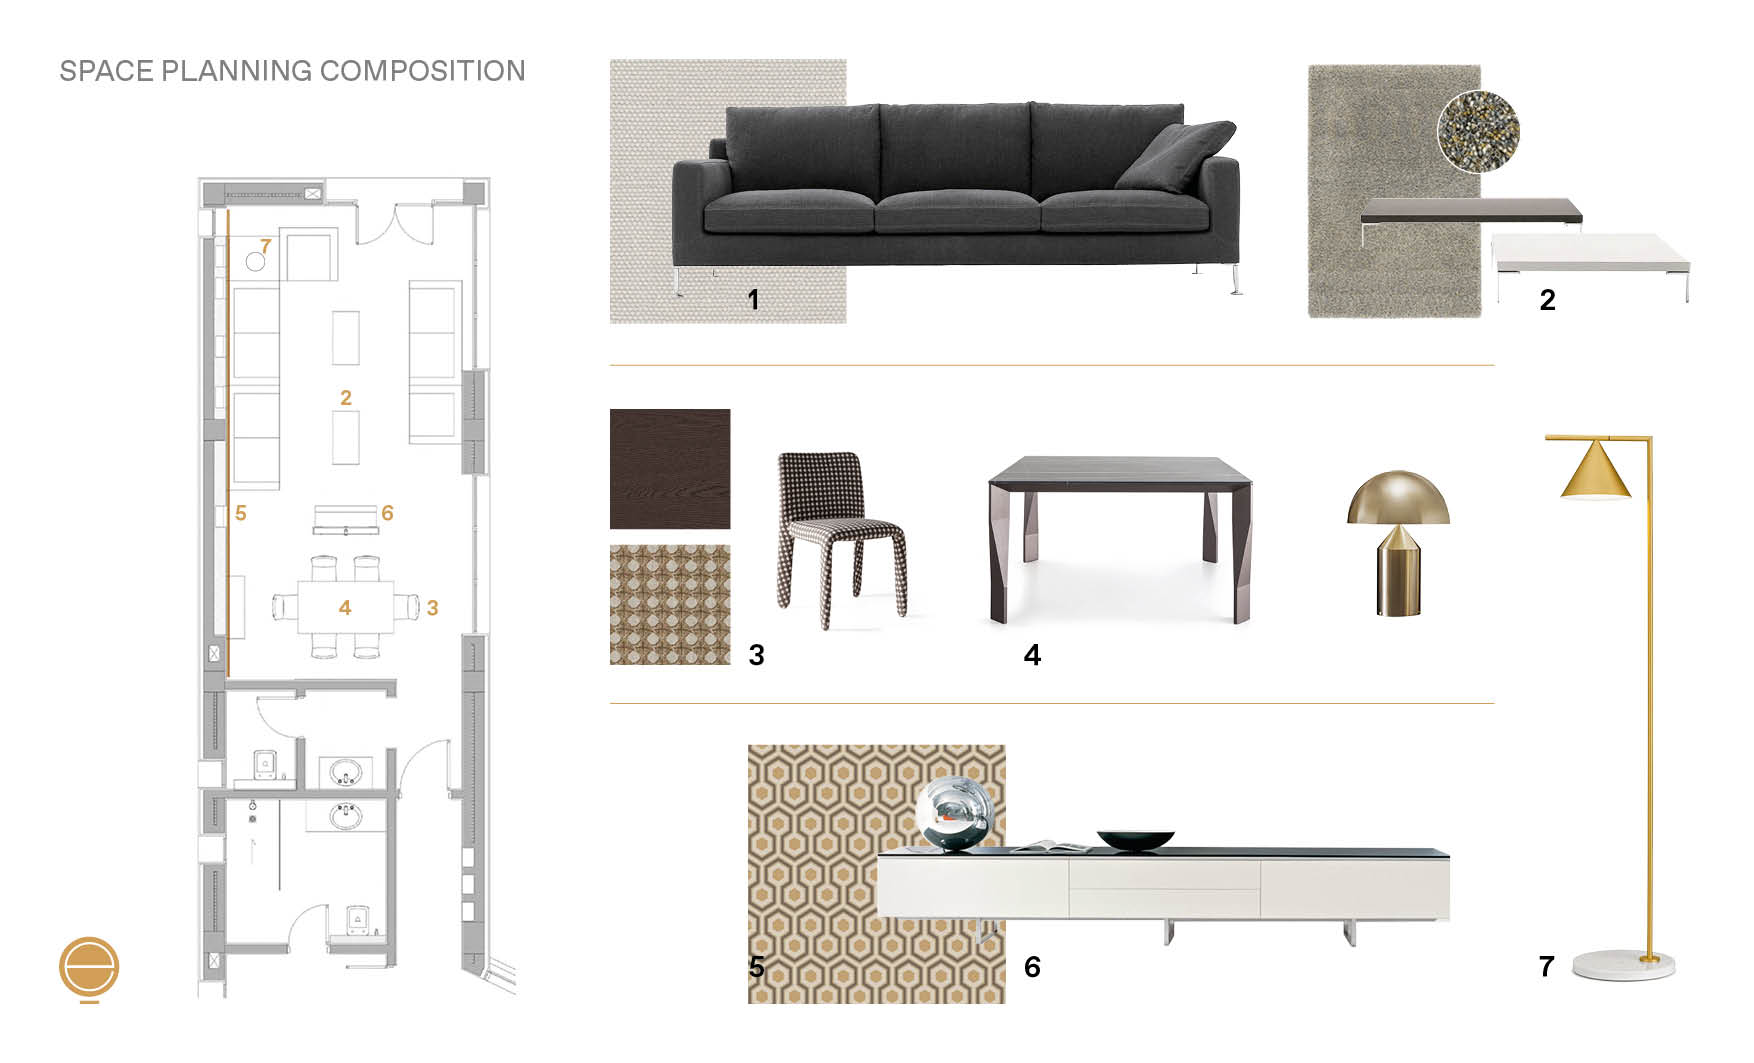 Moodboard and composition of materials and products during the interior design steps